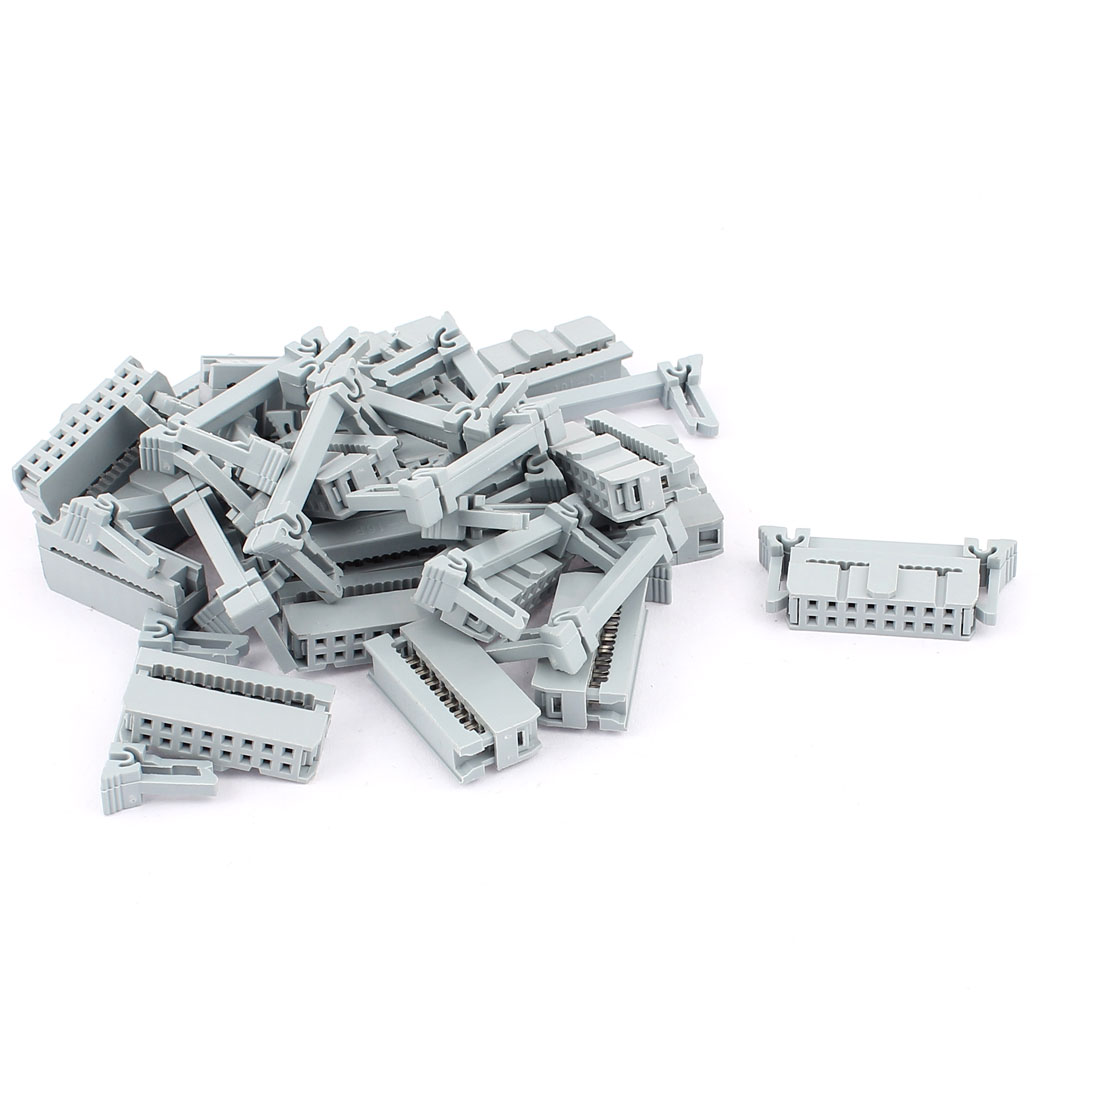 20 Pcs 2 Rows 16 Pins FC-16P IDC Socket Connector Female Header Light Gray